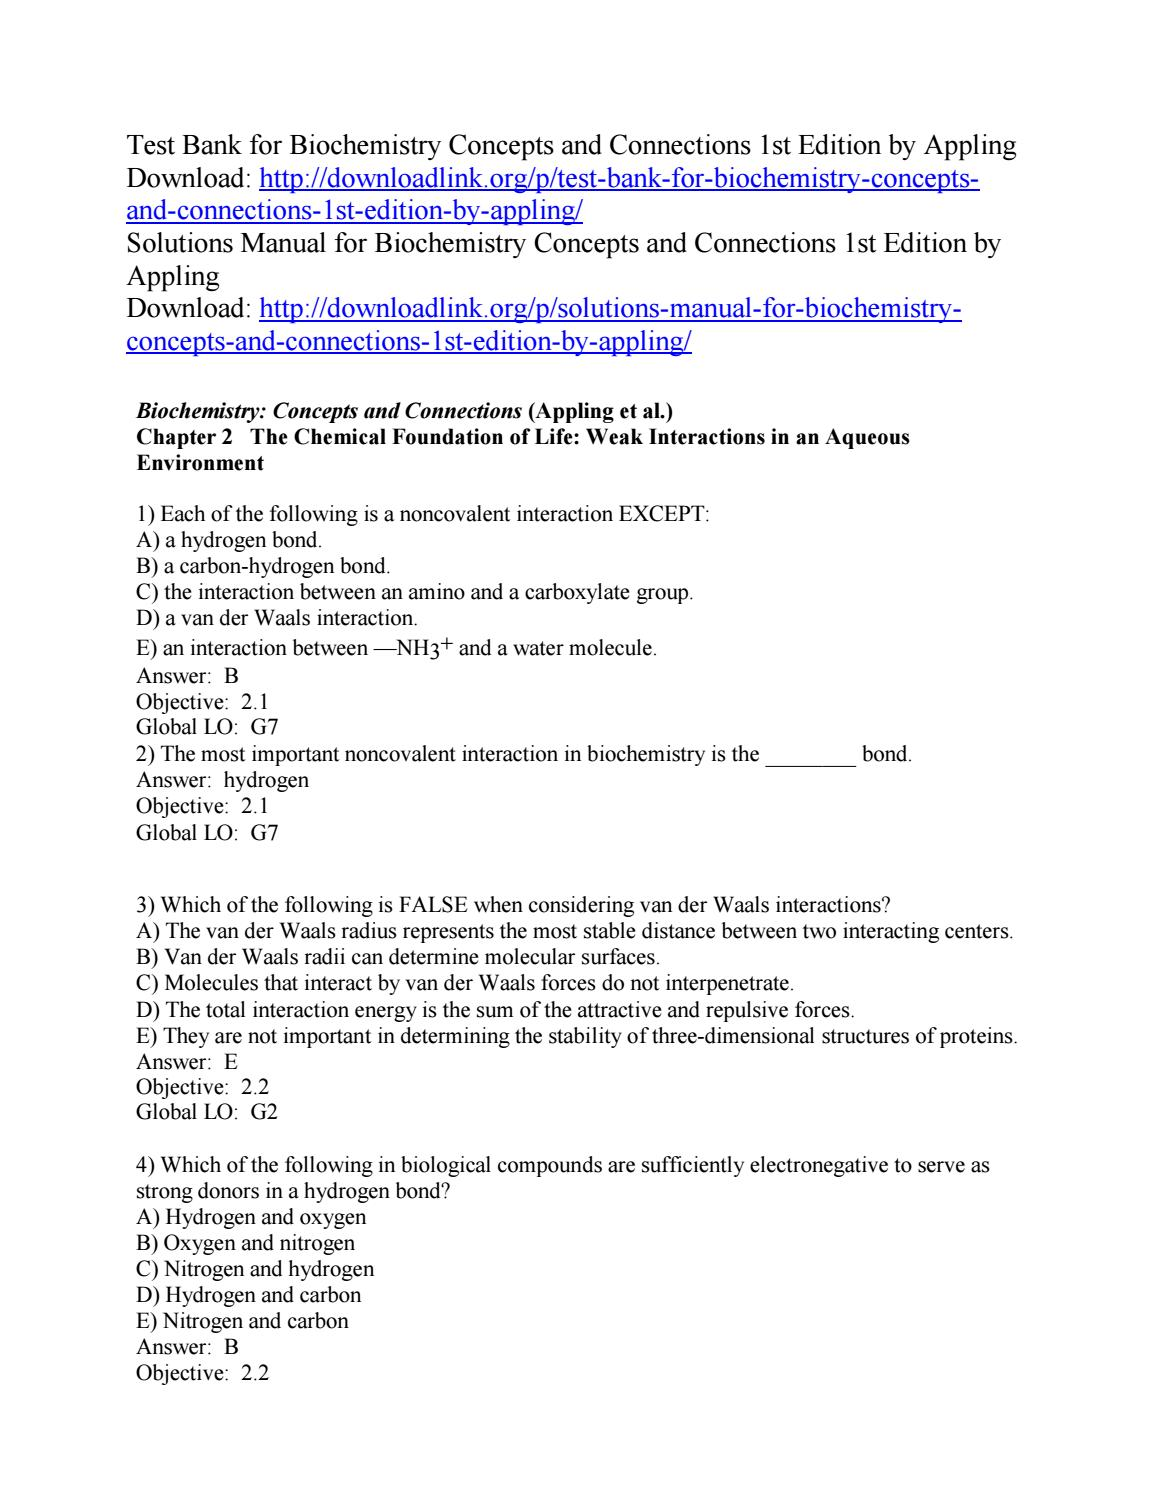 Test Bank for Biochemistry Concepts and Connections 1st Edition by Appling  by ys092 - issuu